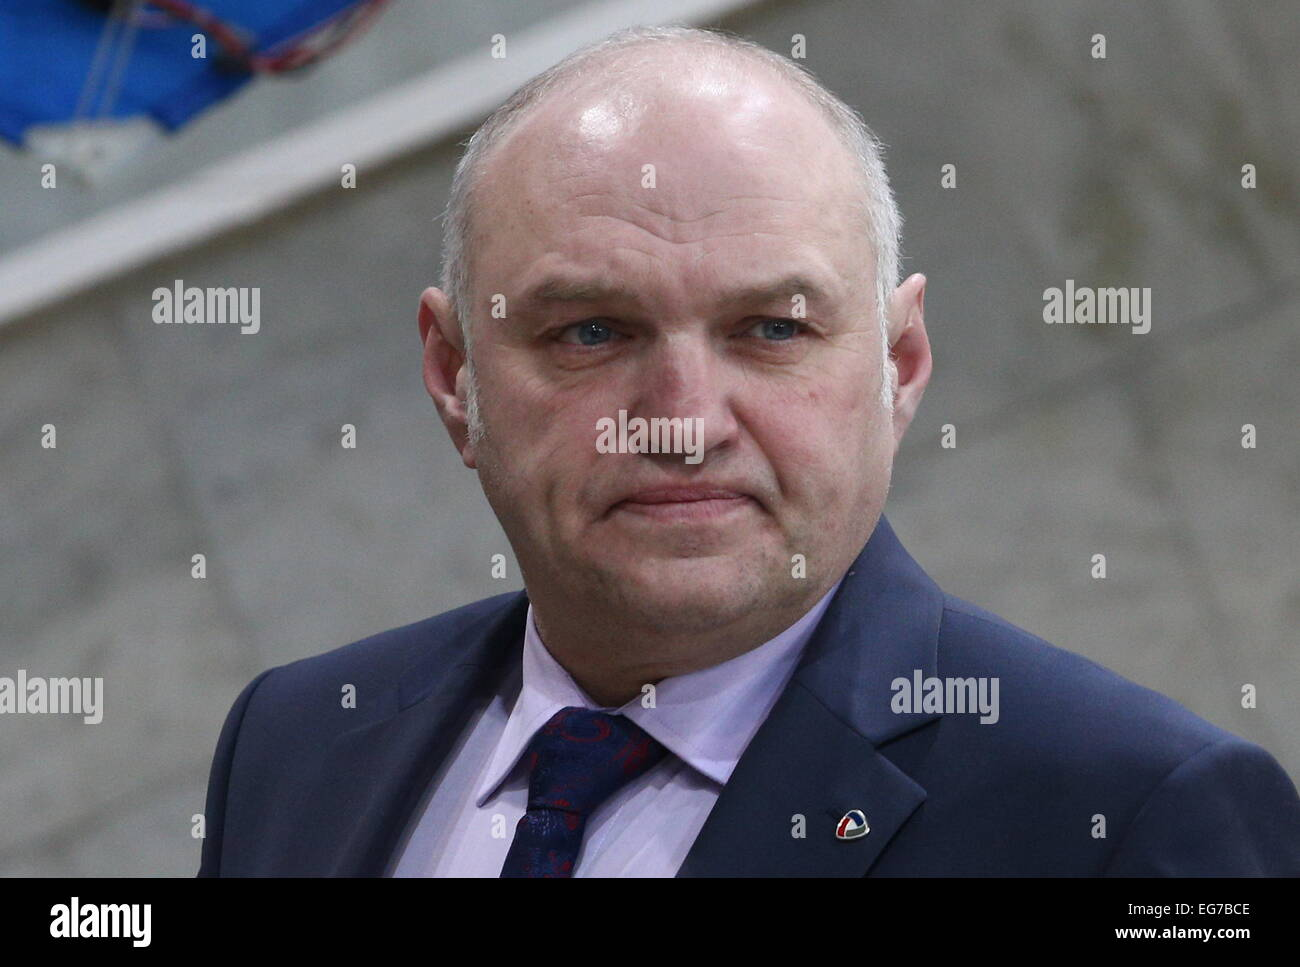 Moscow, Russia. 18th Feb, 2015. Severstal's acting head coach Igor Petrov seen ahead of a 2014/15 KHL Regular - Stock Image